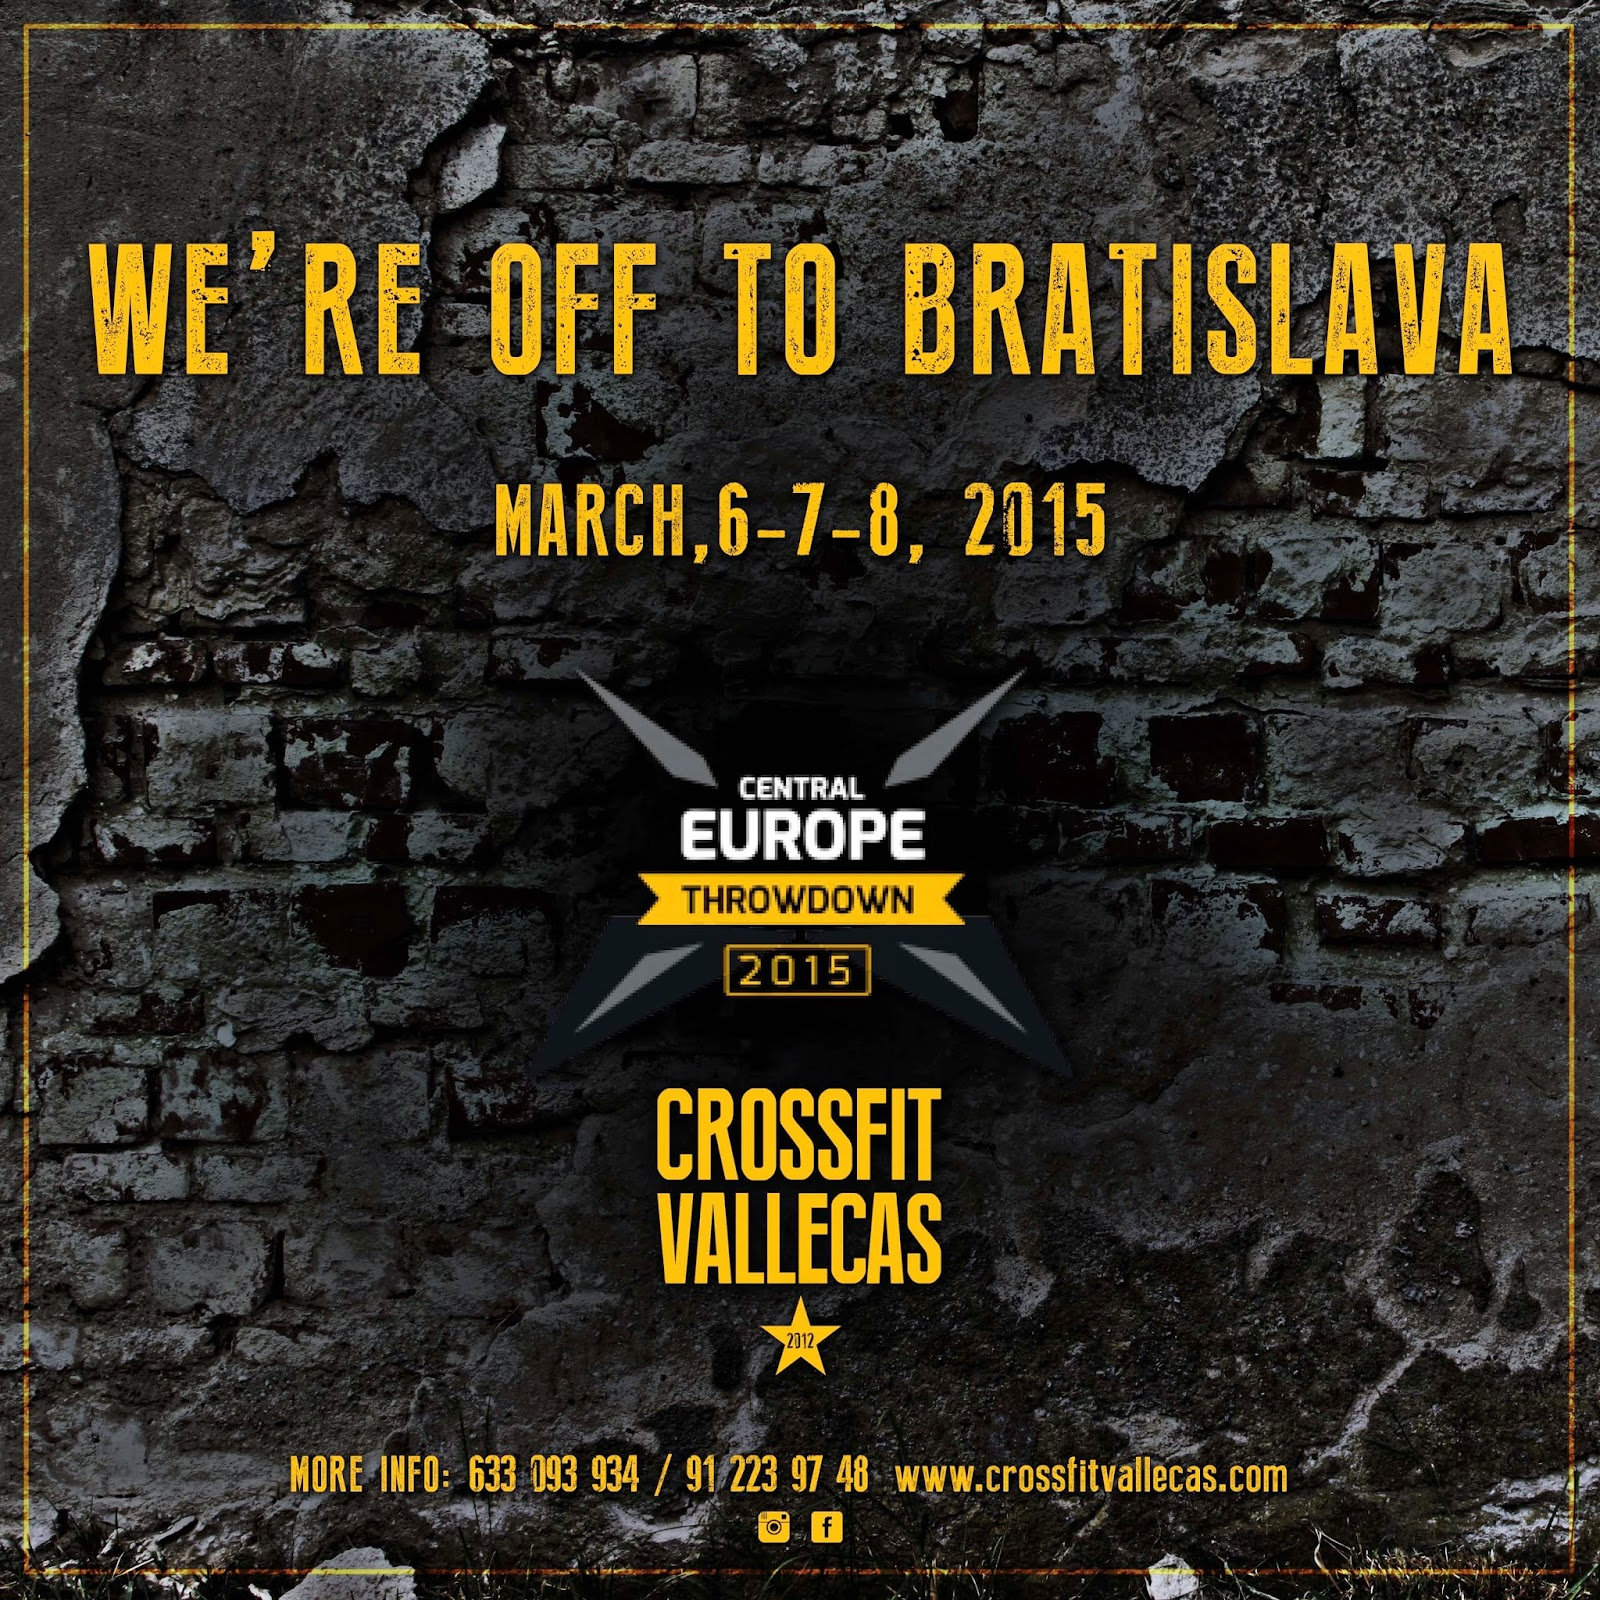 Crossfit vallecas central europe throwdown